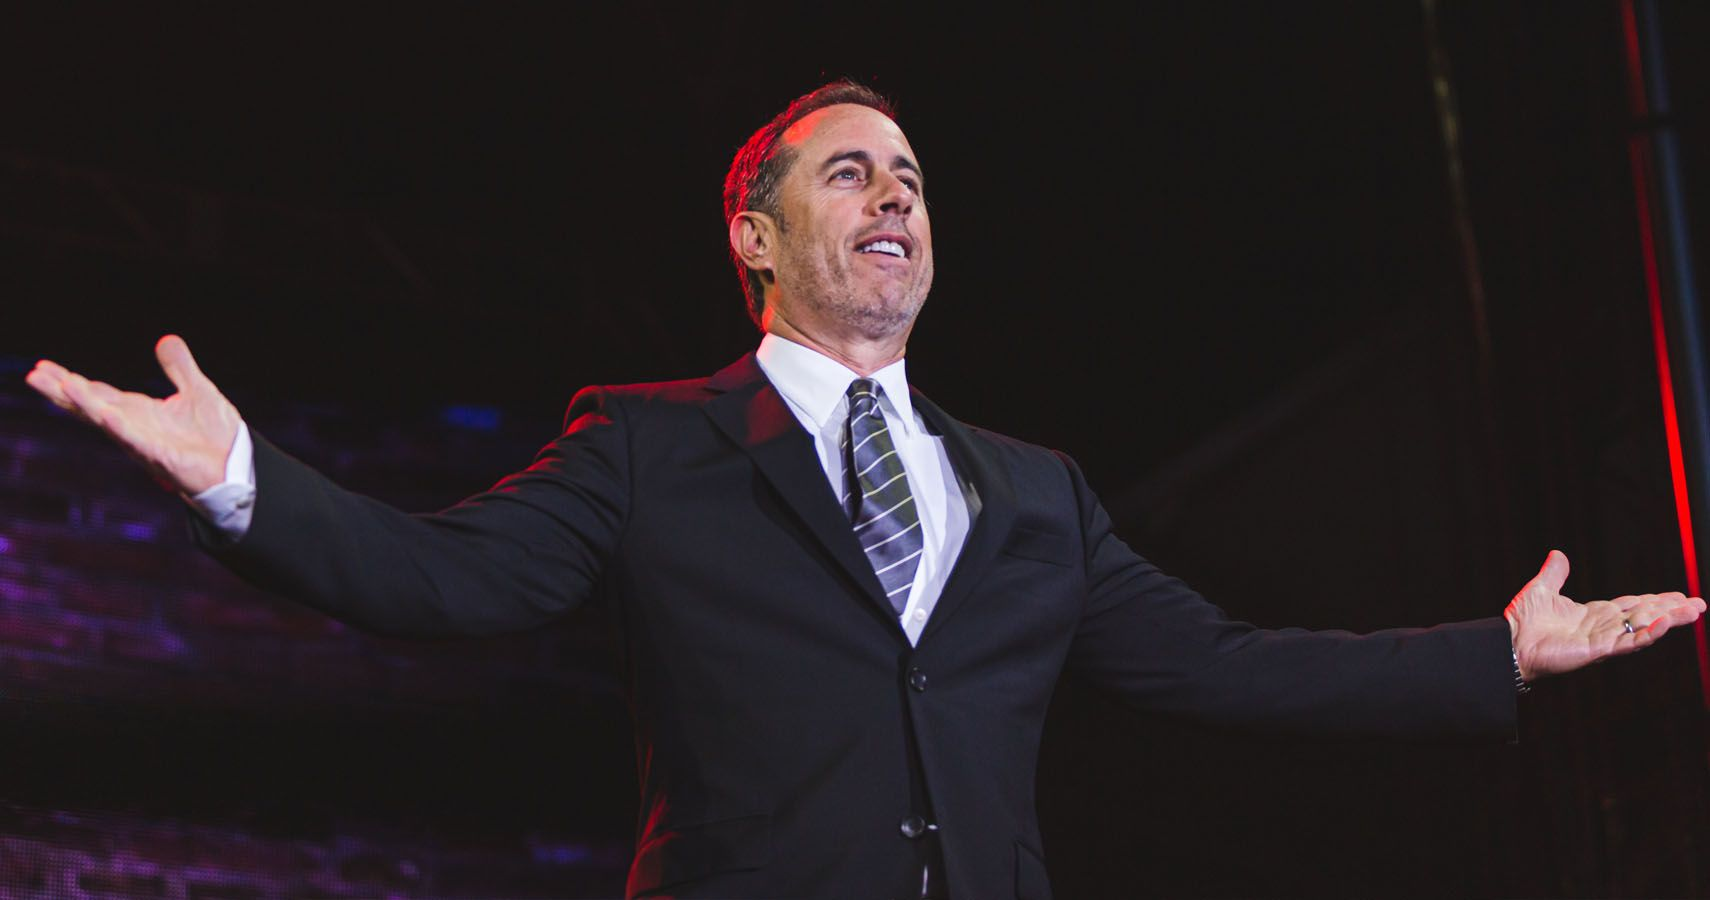 The Richest Comedian In The World: An Inside Look At Jerry Seinfeld's $950 Million